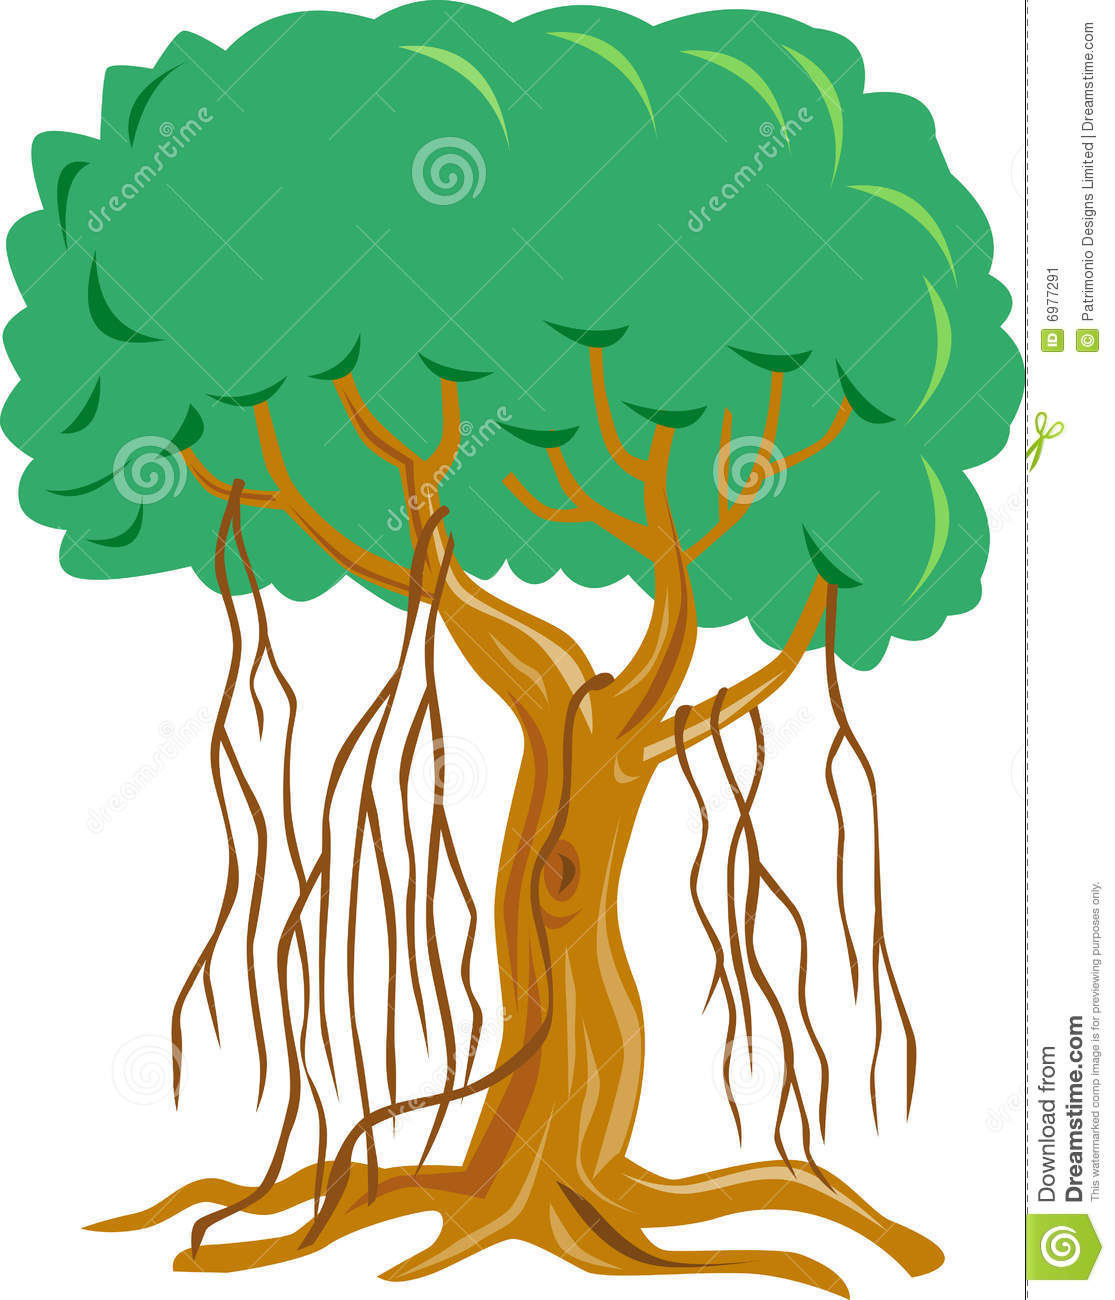 Vector art of trees and flora isolated on white background.